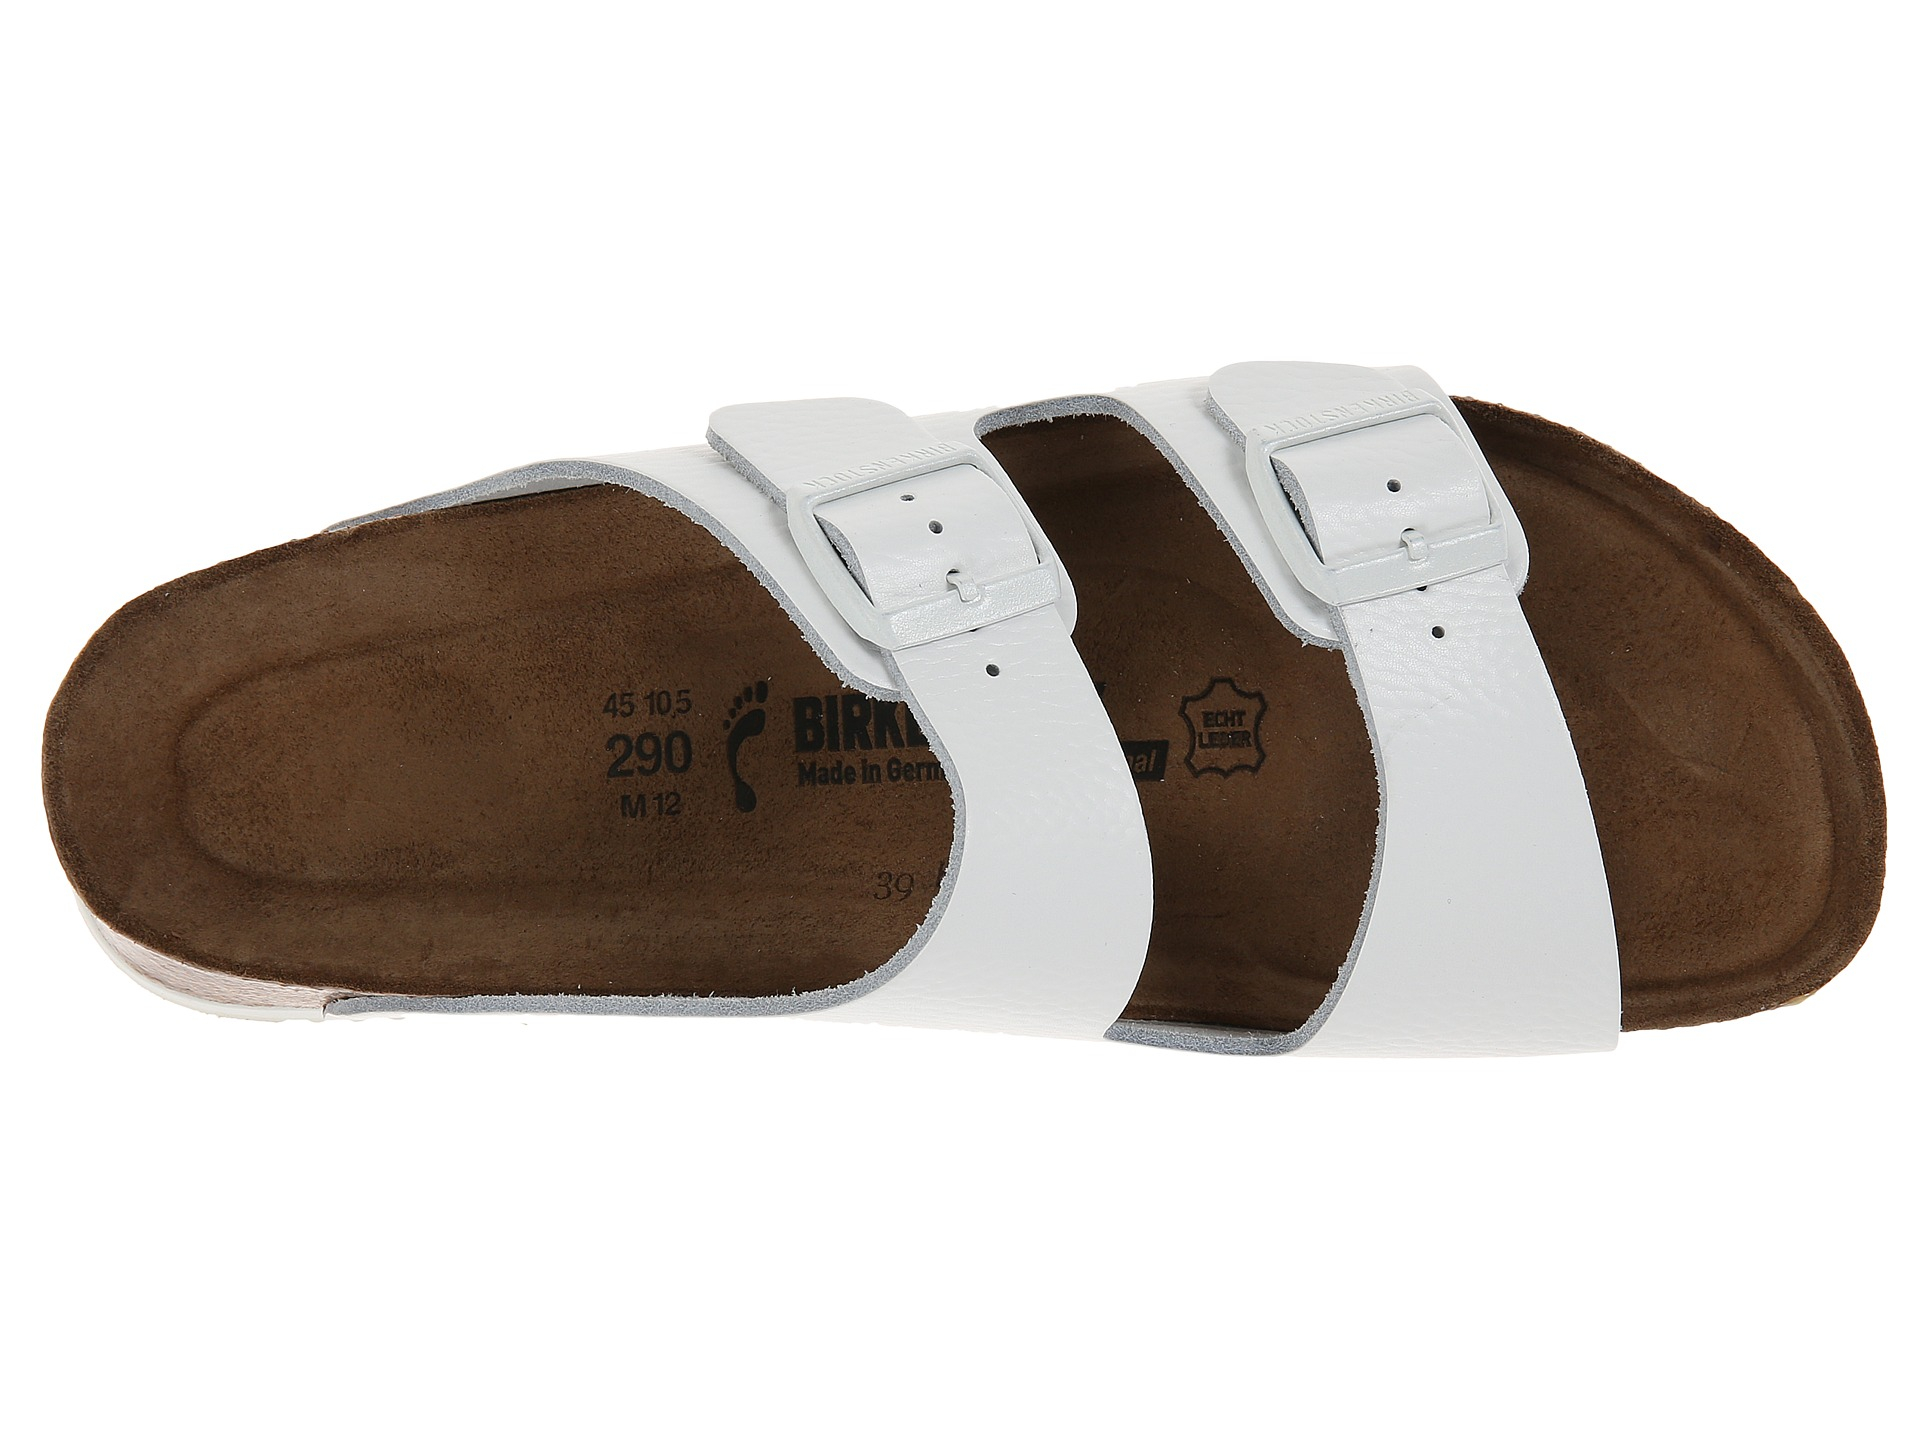 6854401a02c Lyst - Birkenstock Arizona Soft Footbed Super Grip in White